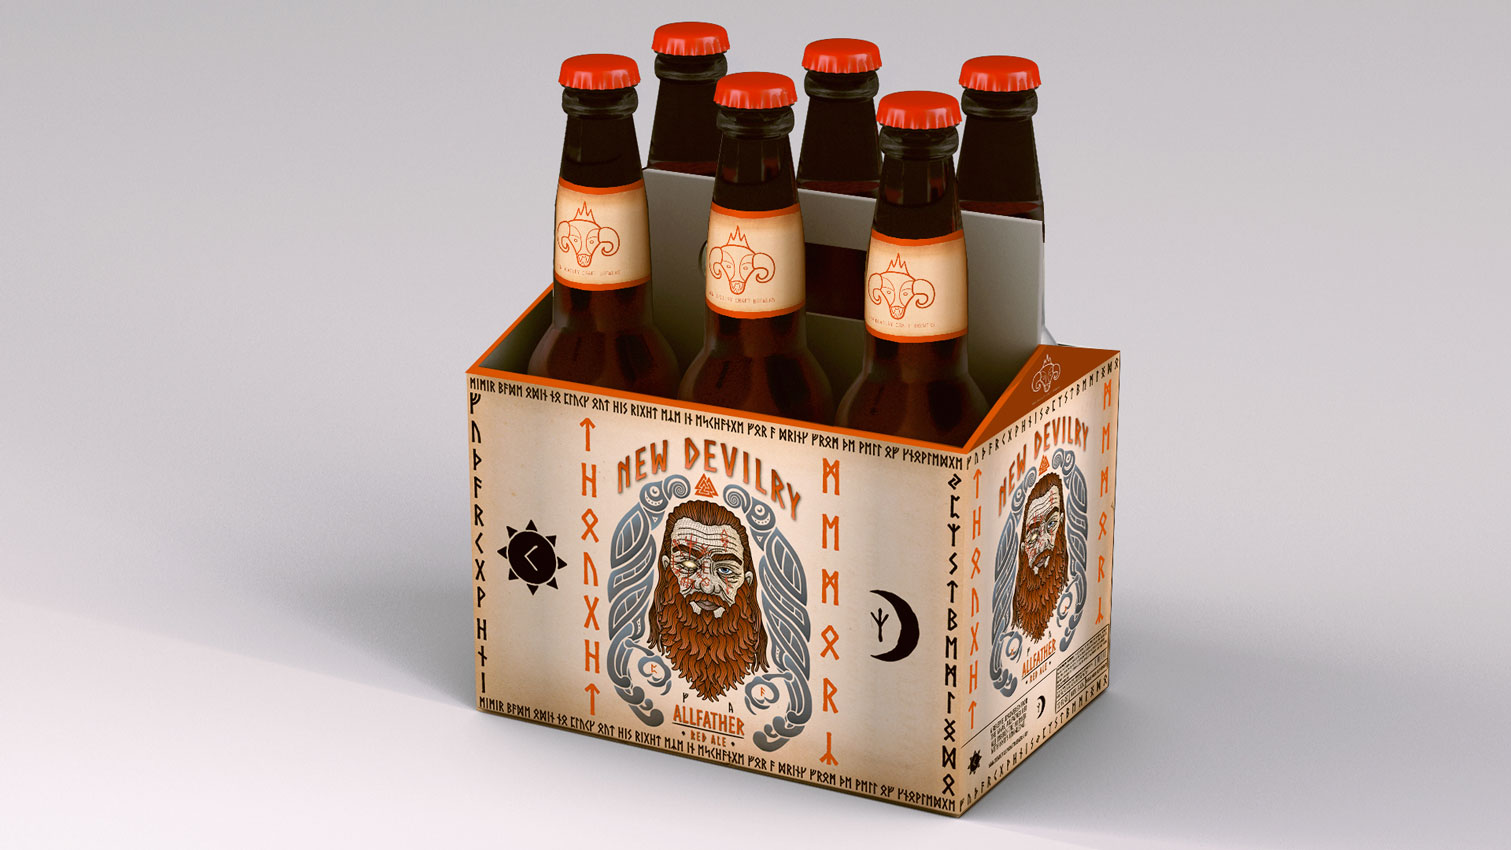 Allfather-Six-Pack-Beer-Packaging-and-Label-Mock-Up_1_web.jpg